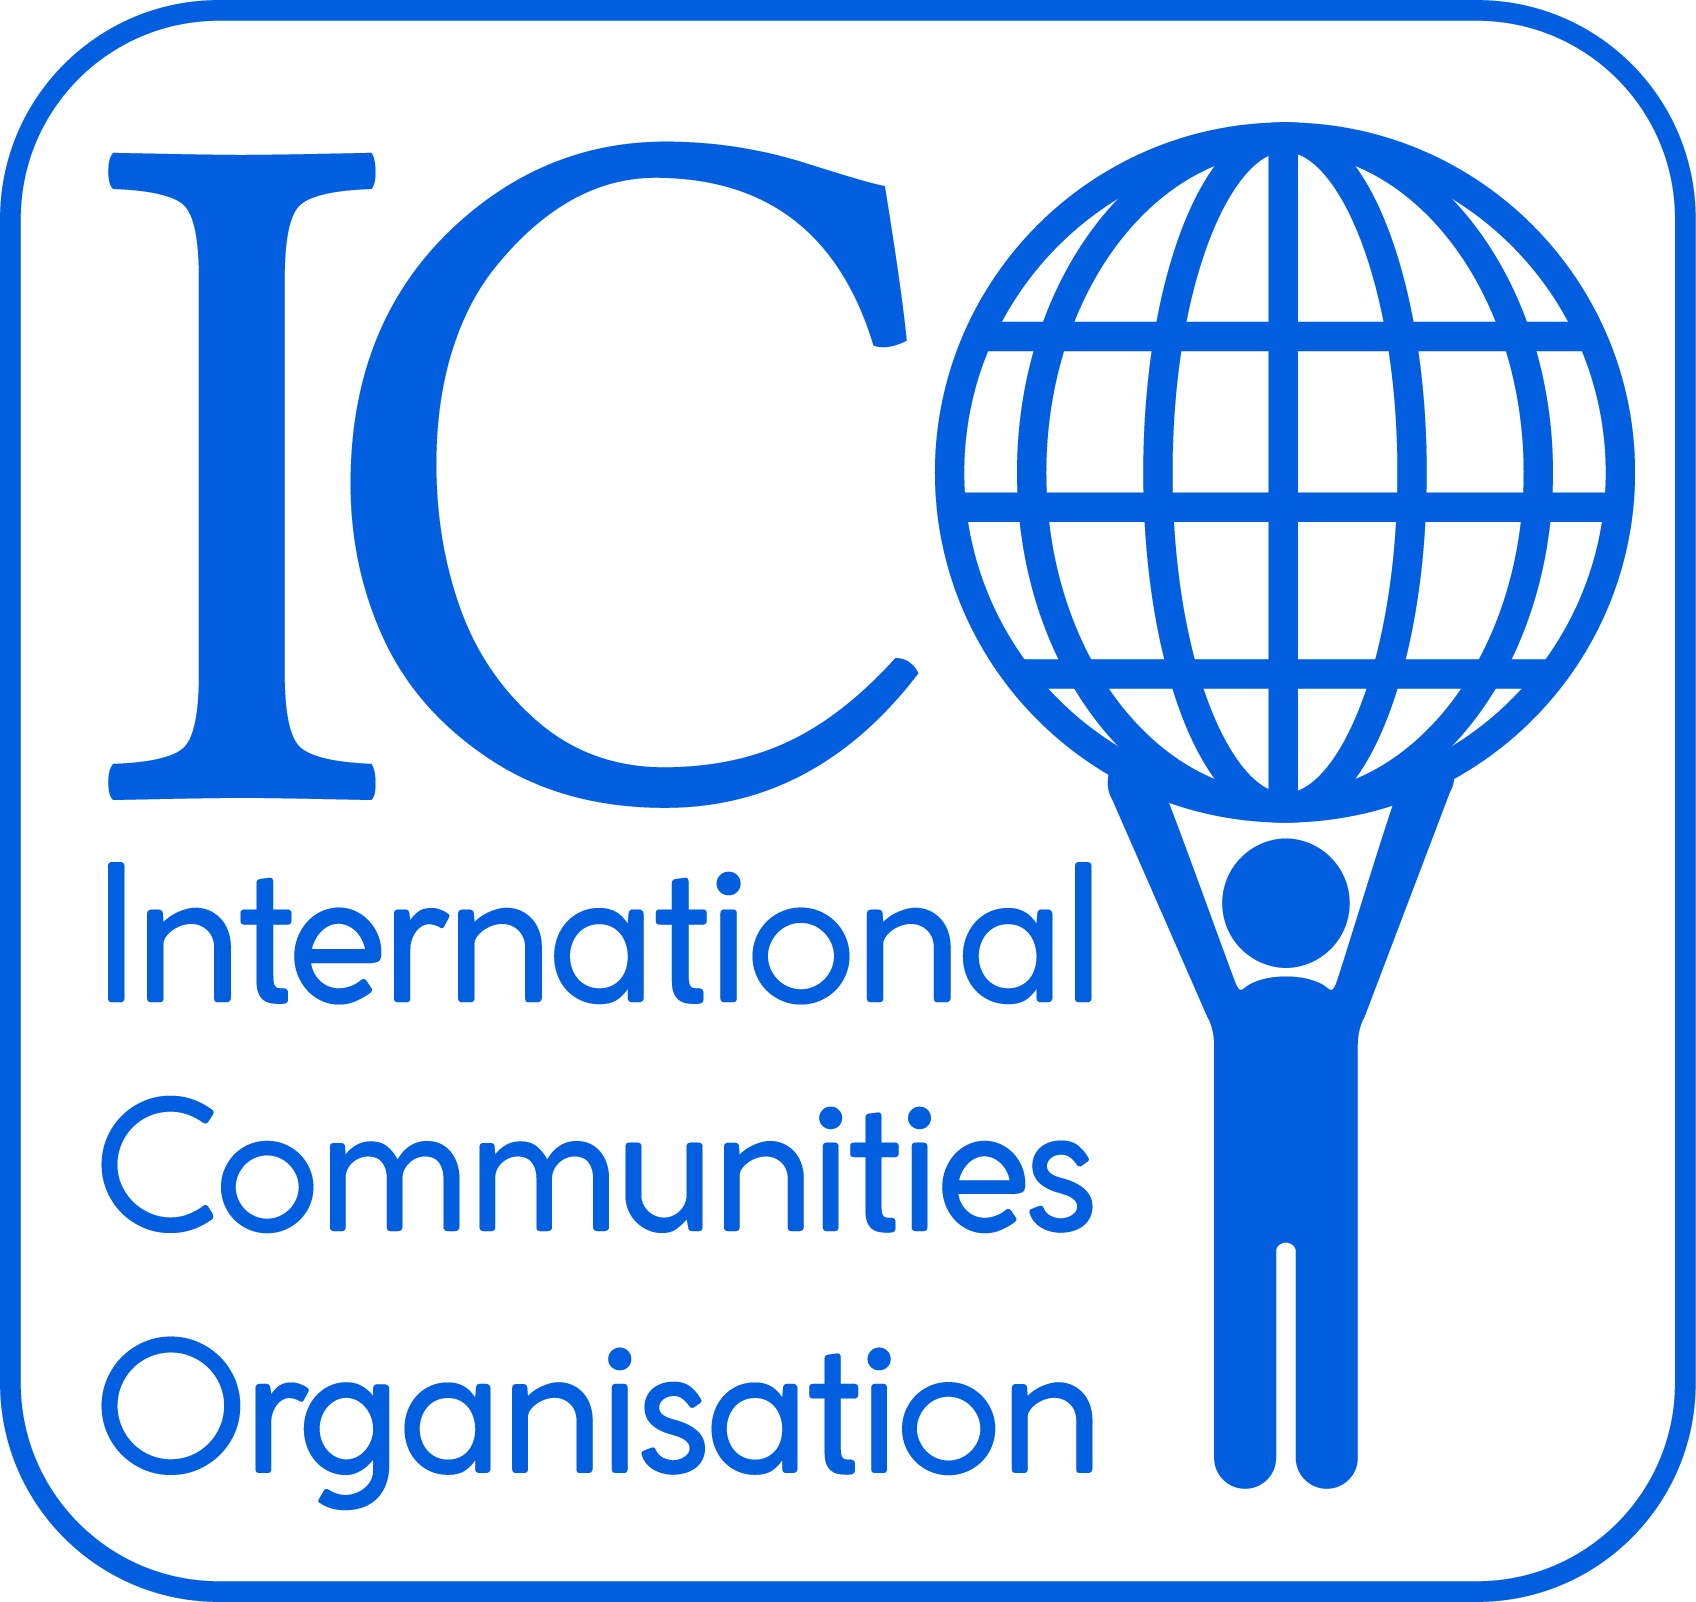 ICO – International Communities Organisation